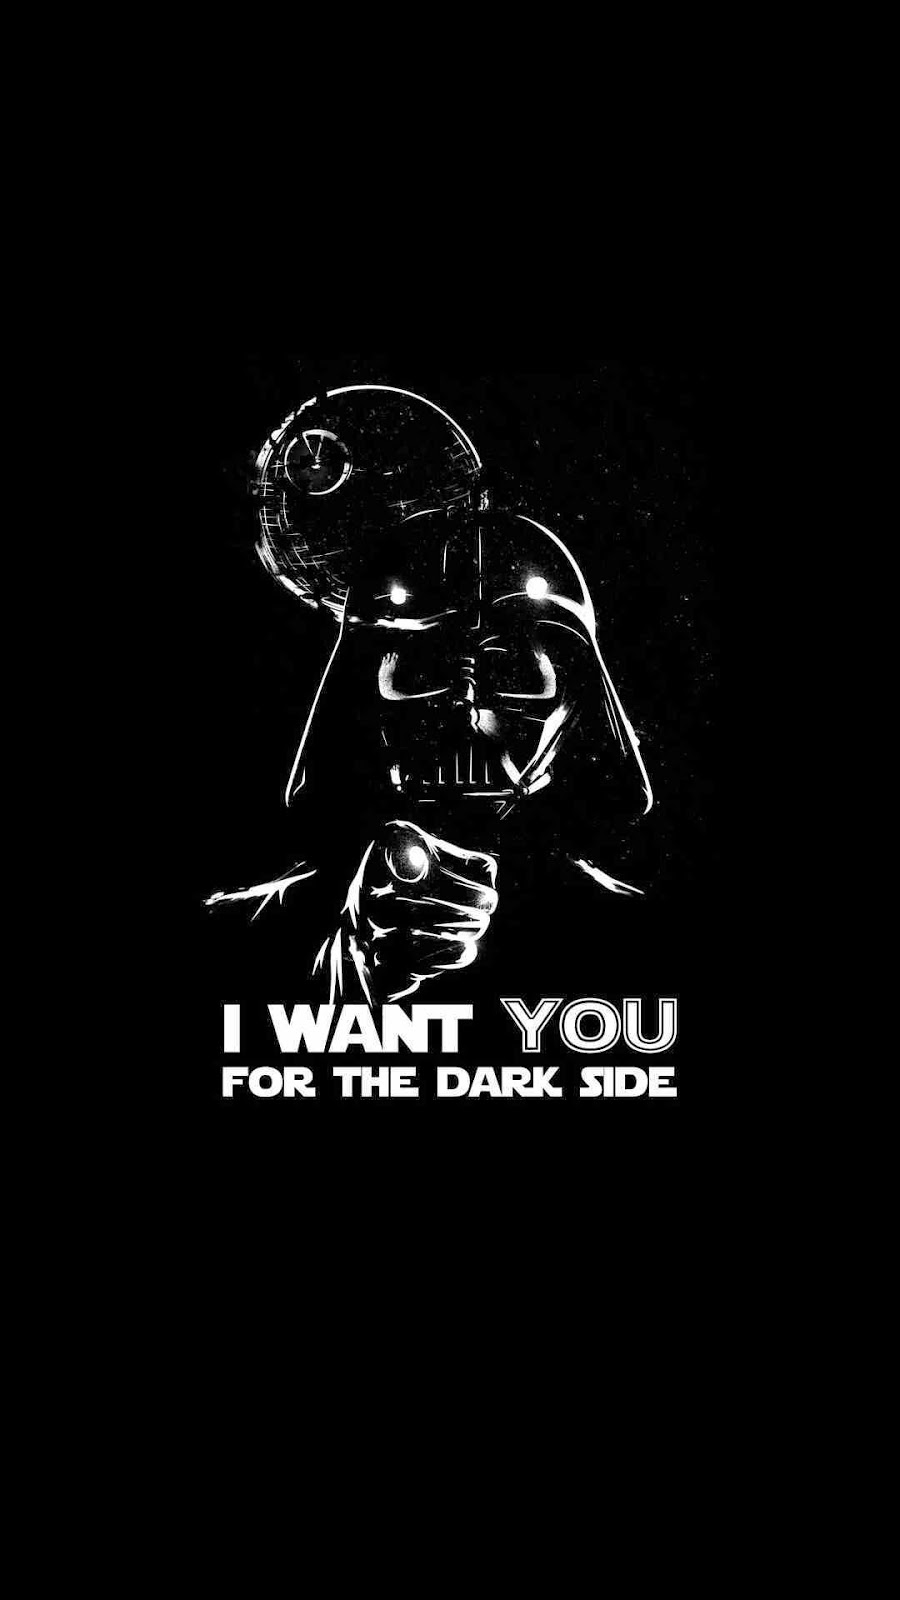 i want you for the dark side typography mobile wallpaper 1080x1920 3771 3037597430